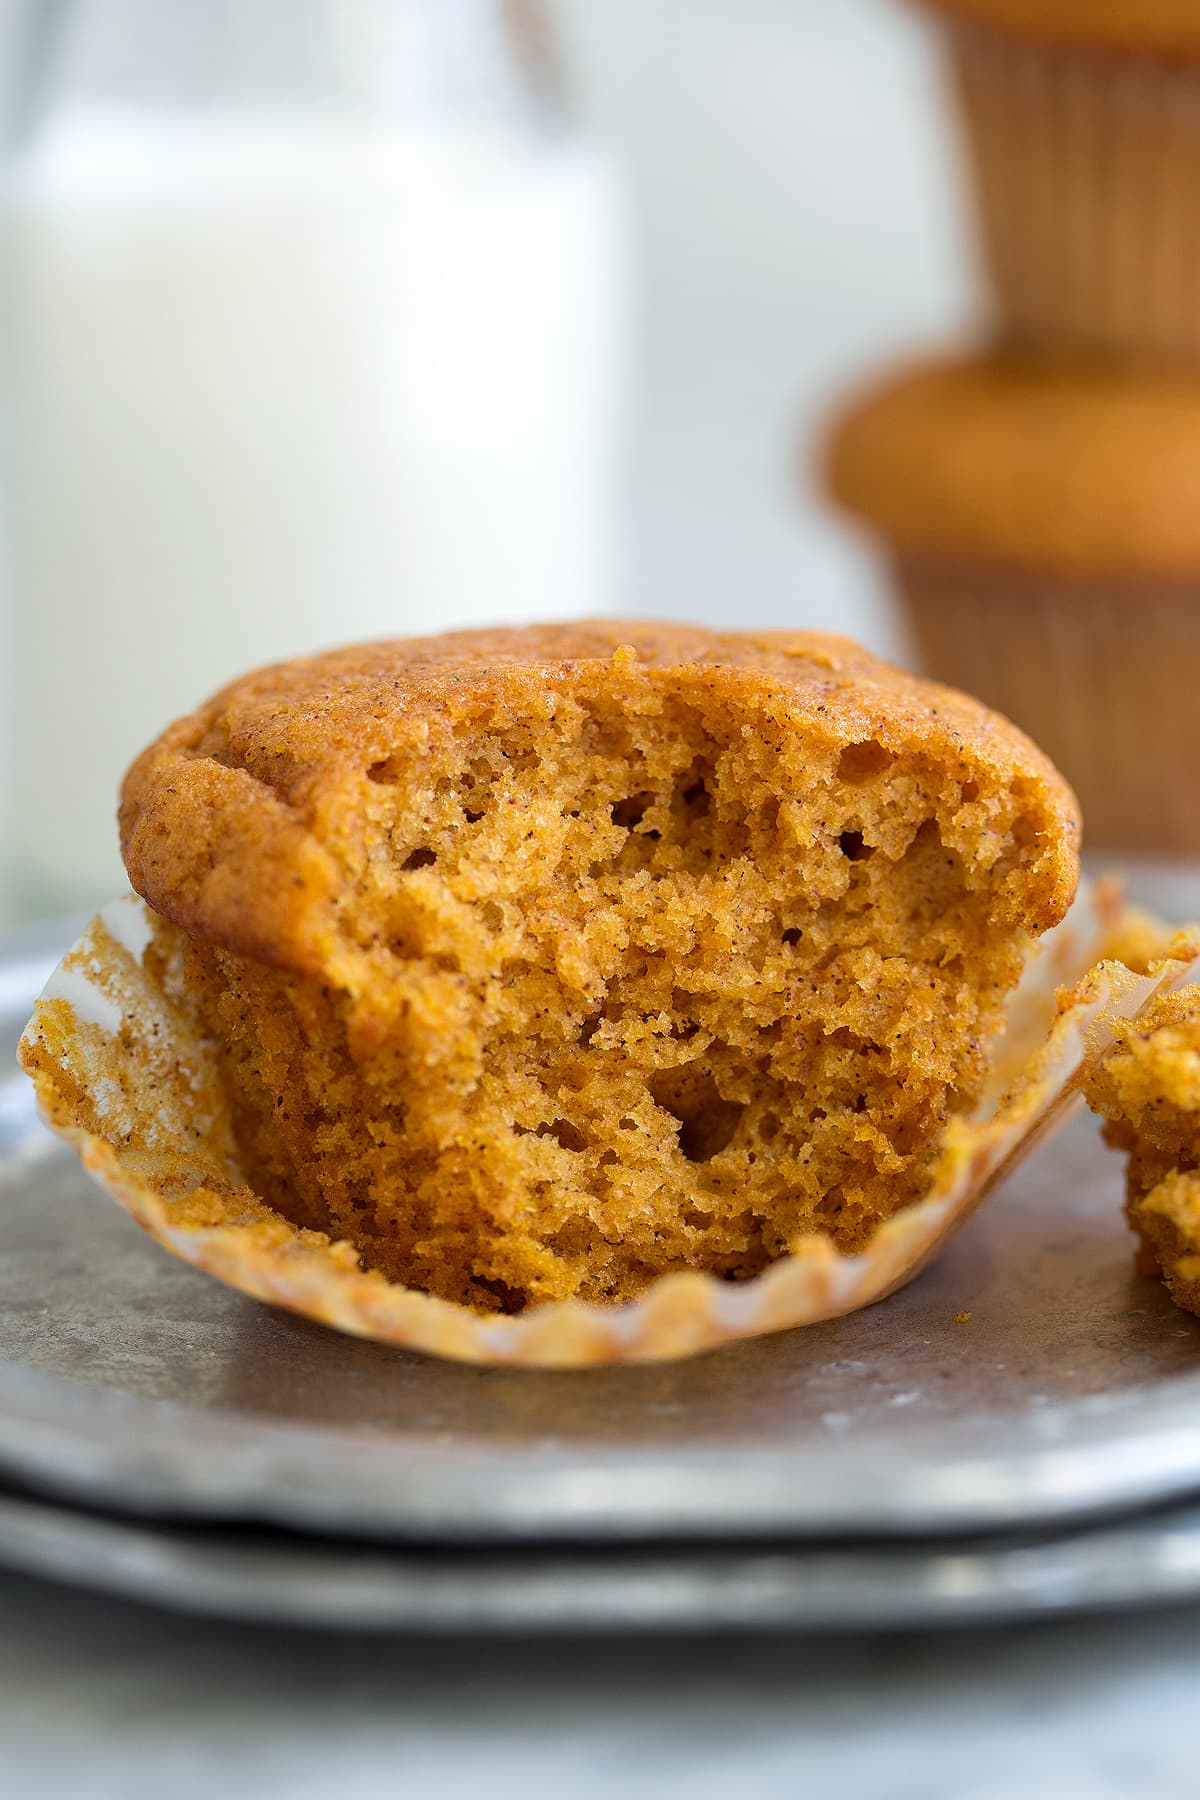 Texture of Pumpkin Muffins shown here after biting into